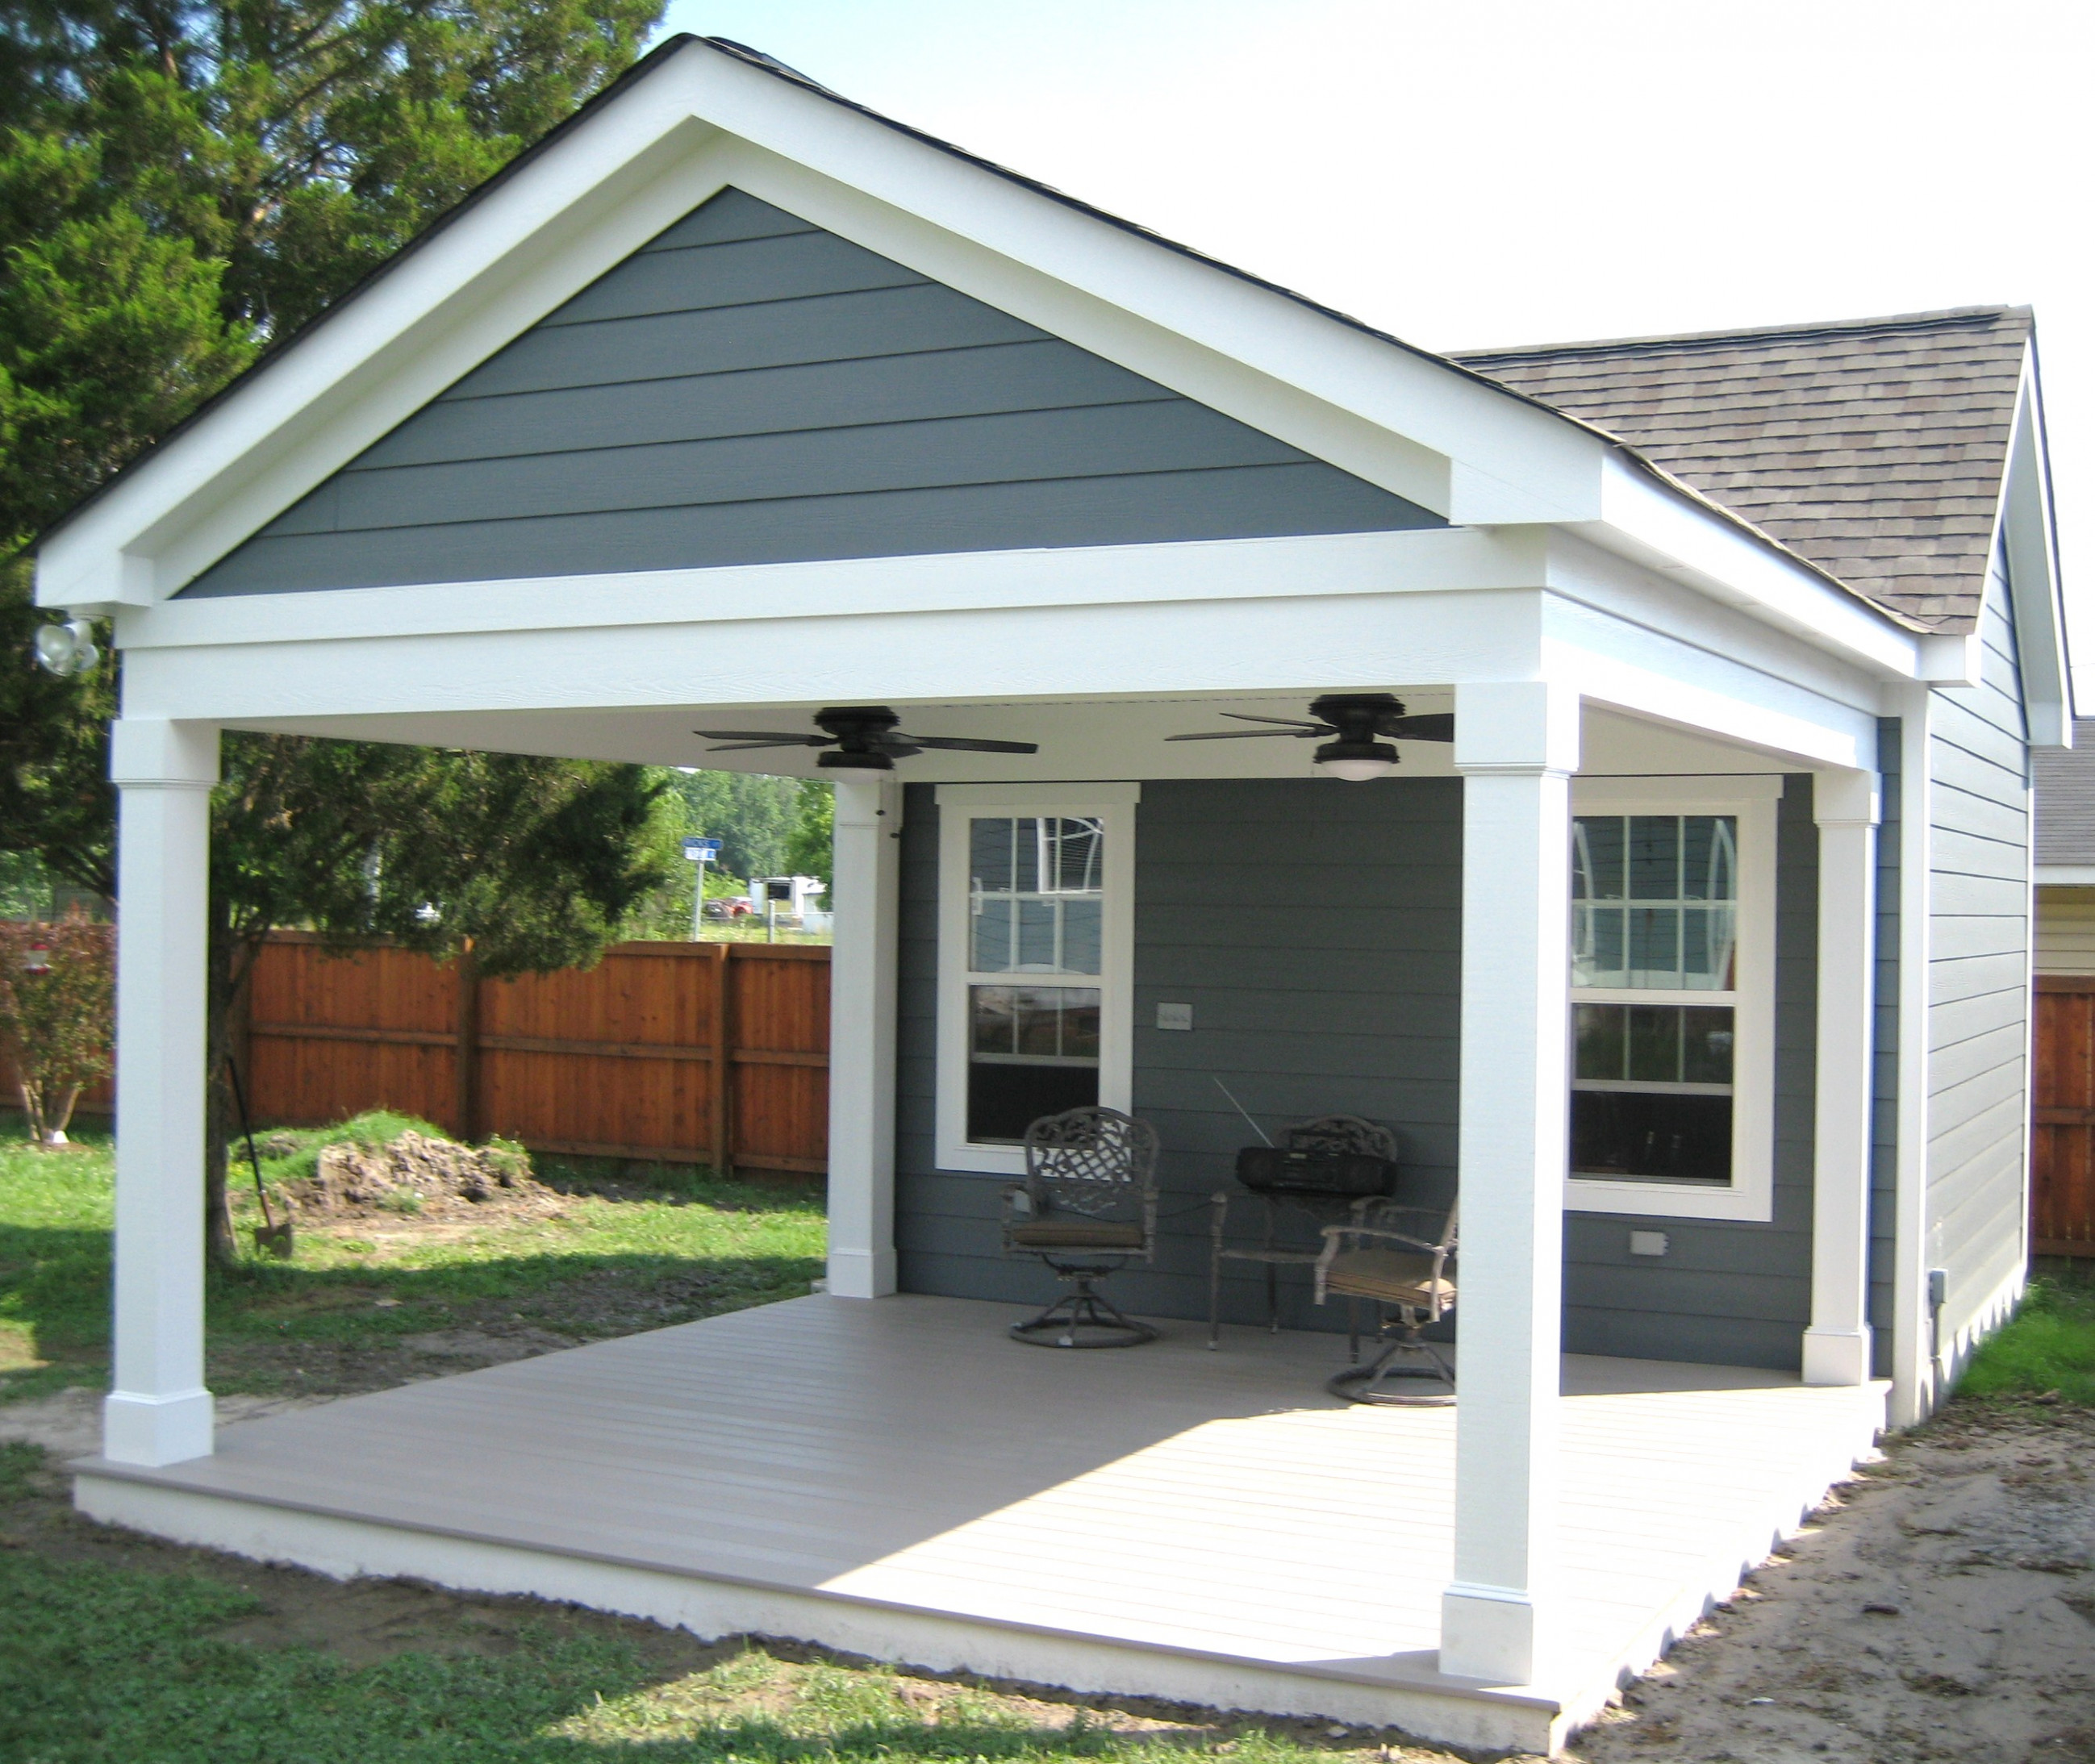 Carports Custom Design Car Garage With Carport Plans ...